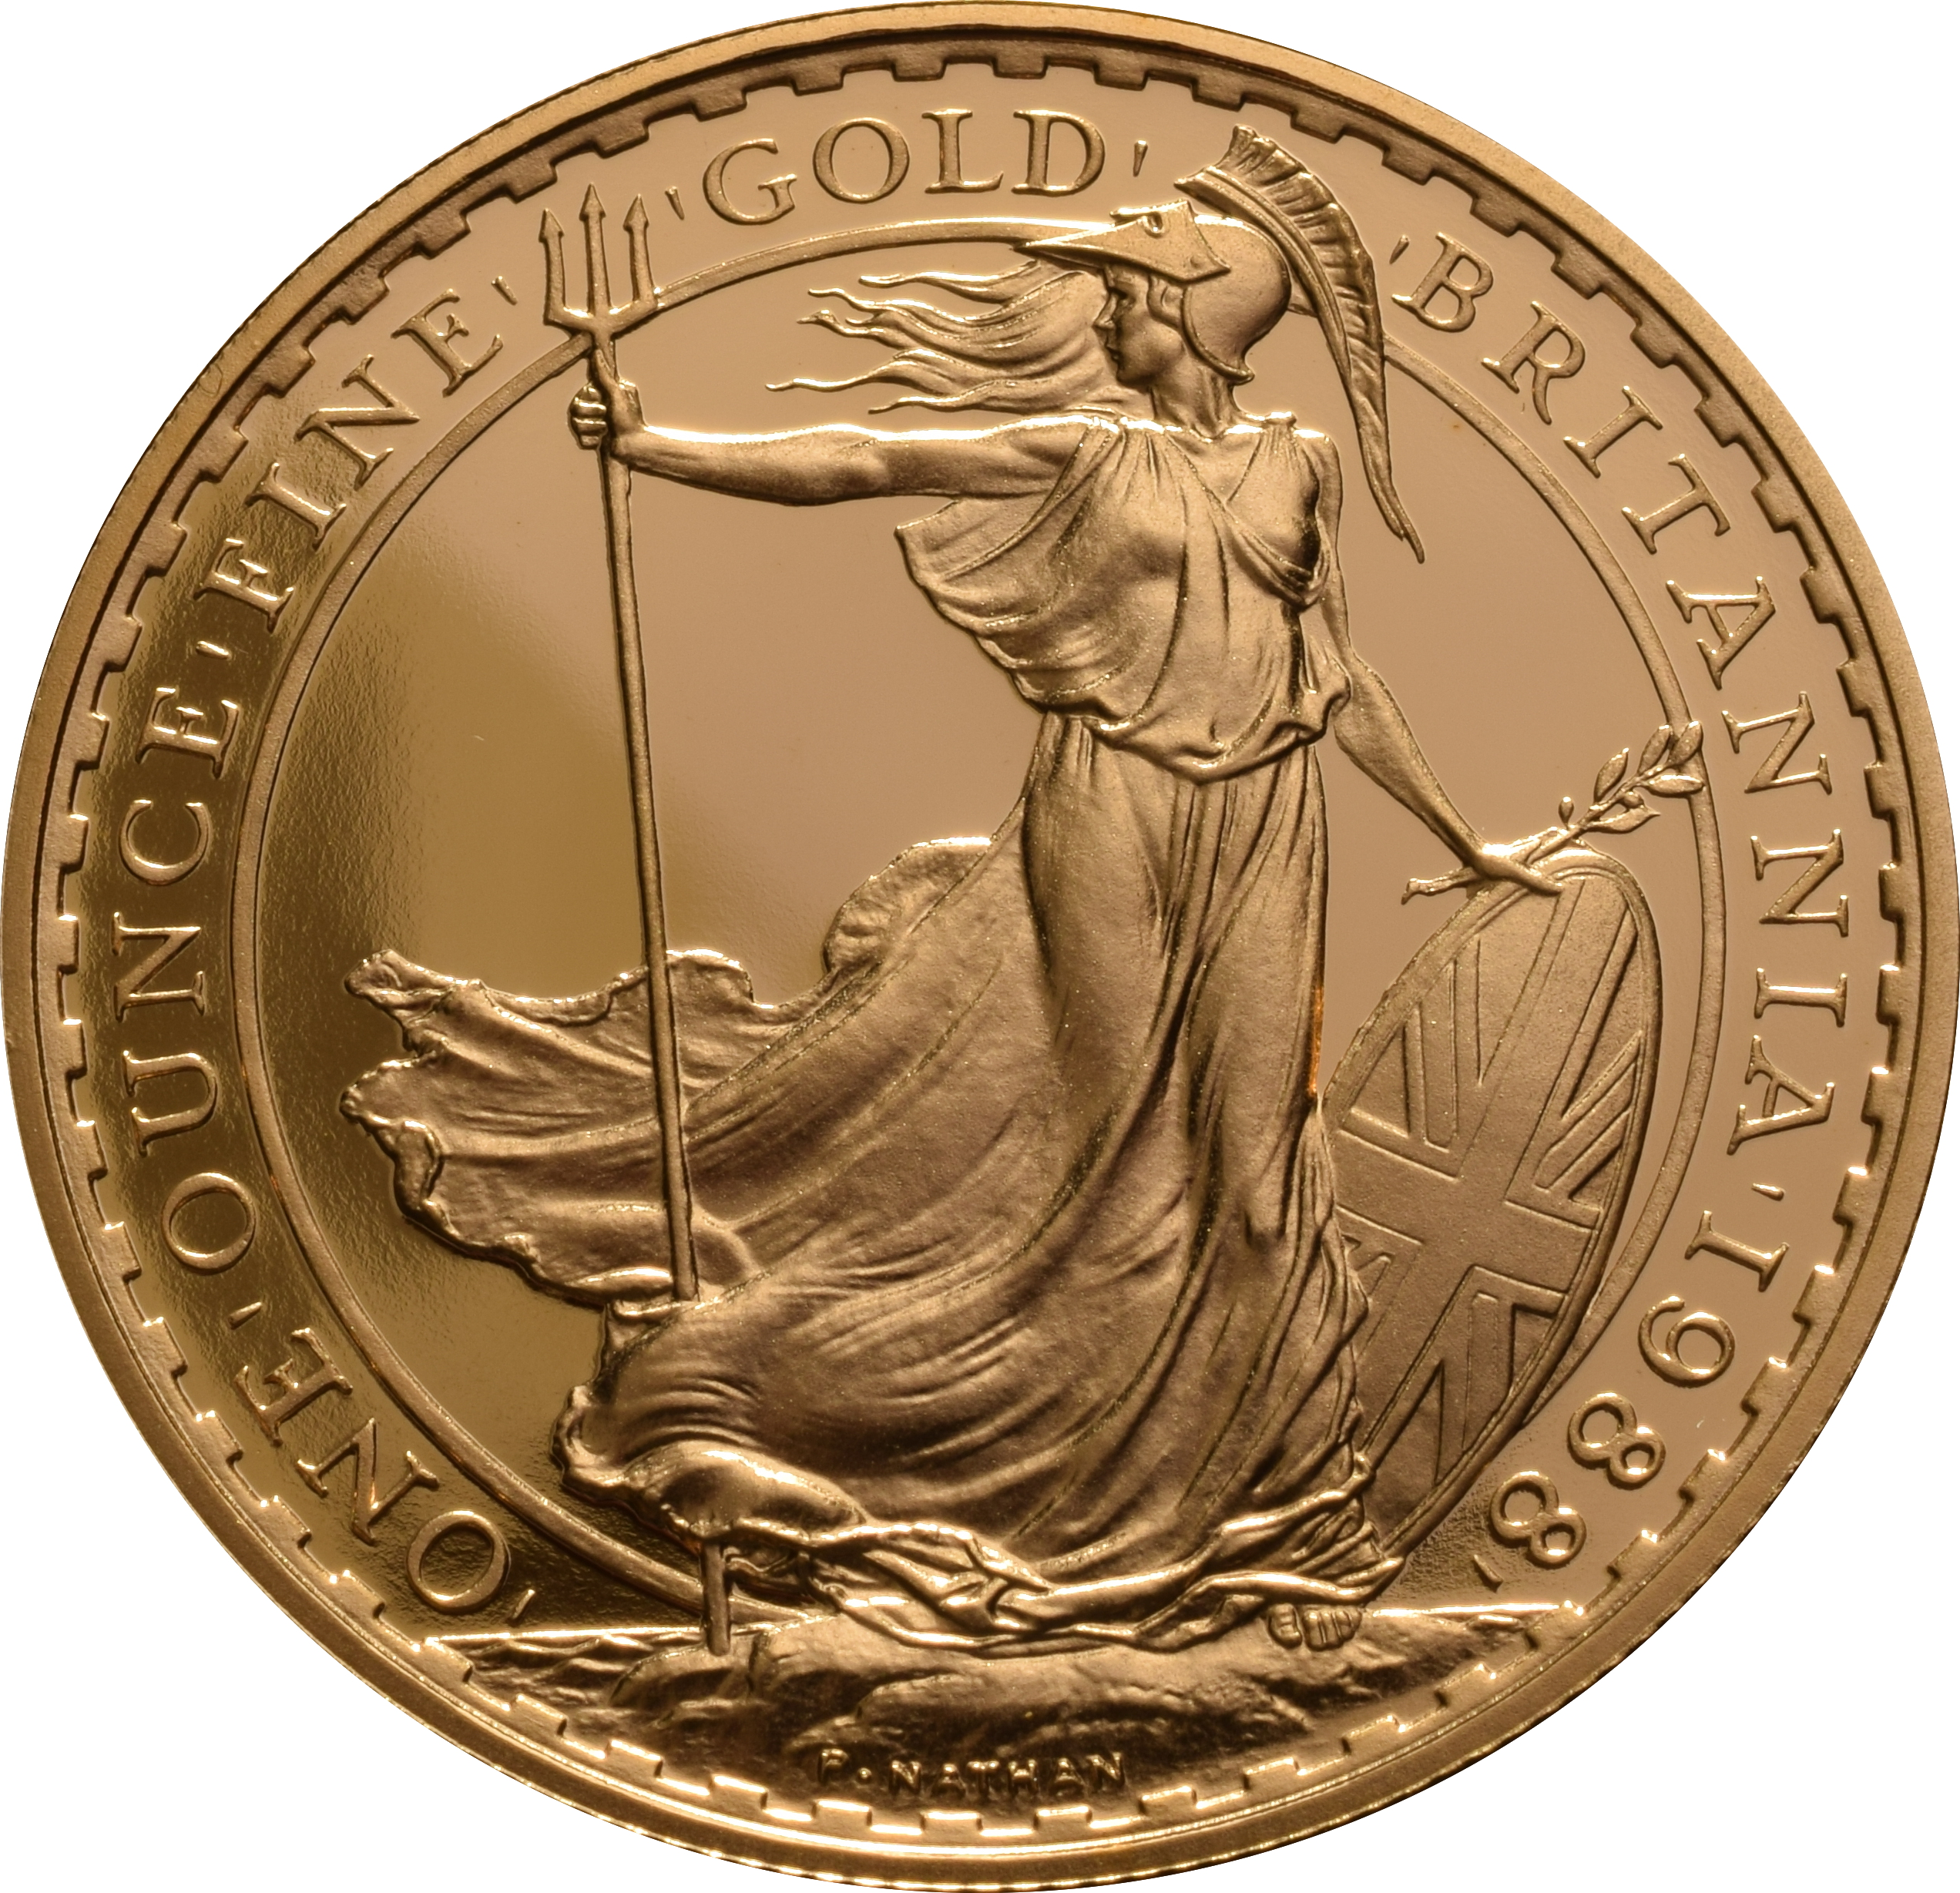 1988 Britannia Proof Gold Coin Collection From